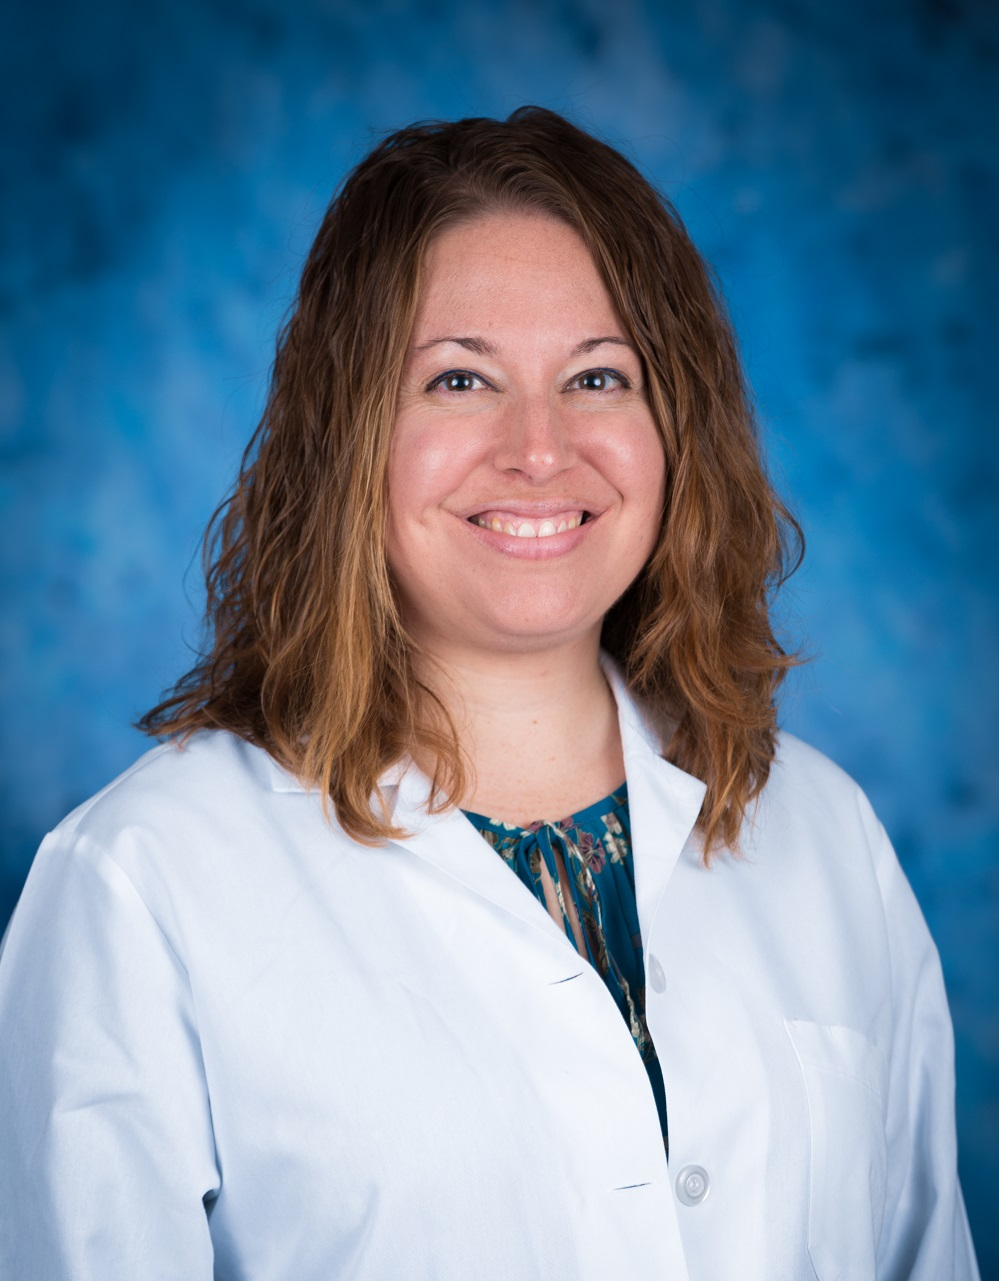 Board-Certified Family Medicine Physician Heather Martin, DO